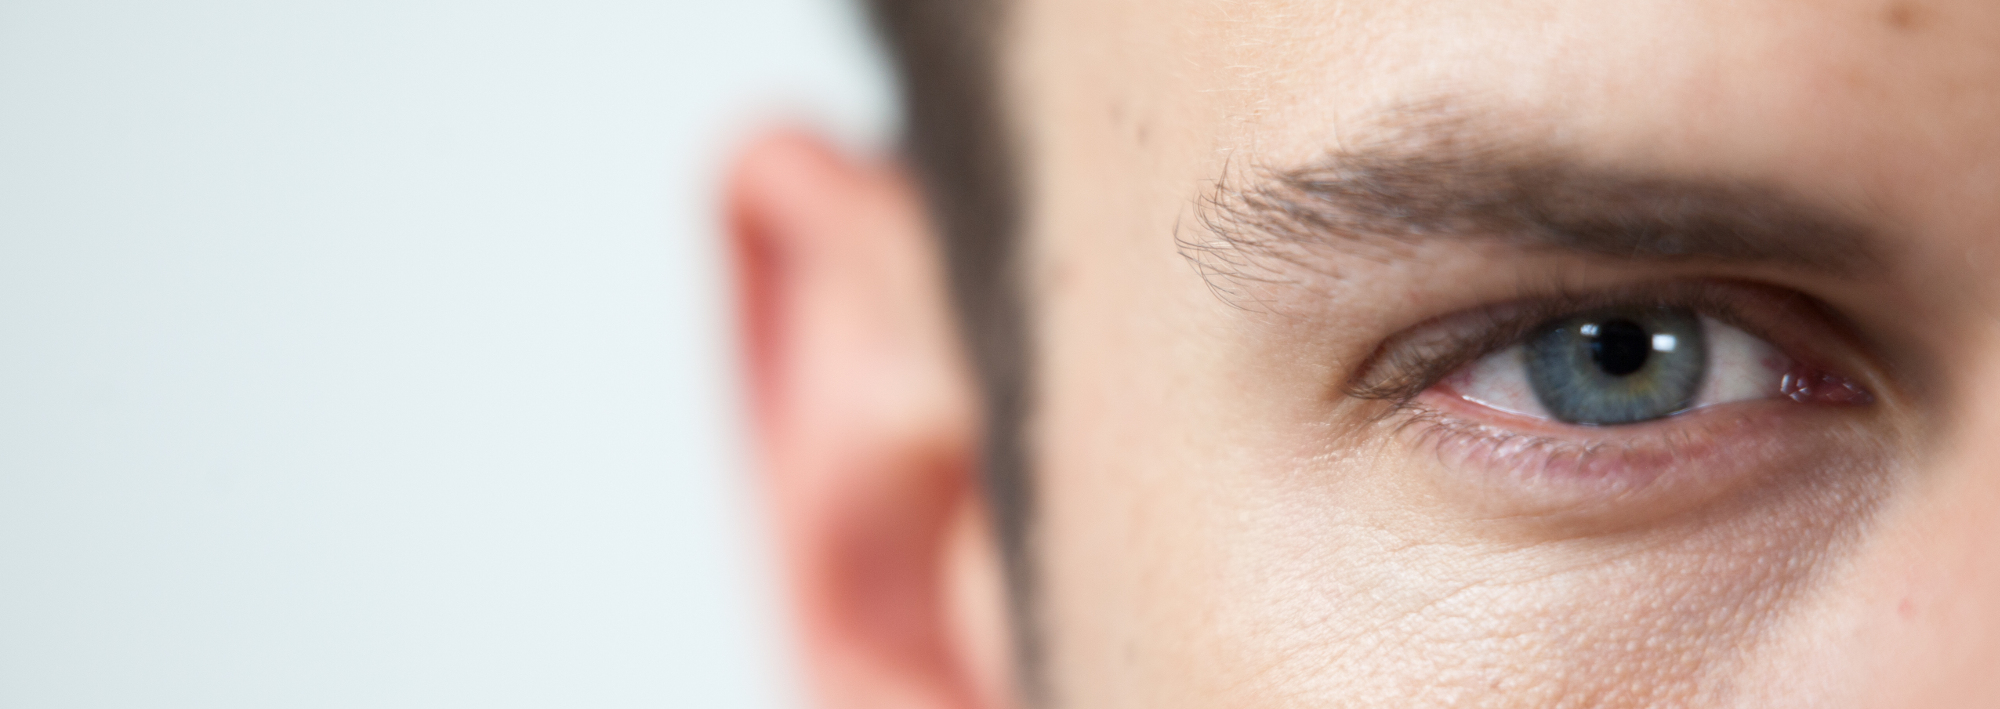 Close up image of man's right eye